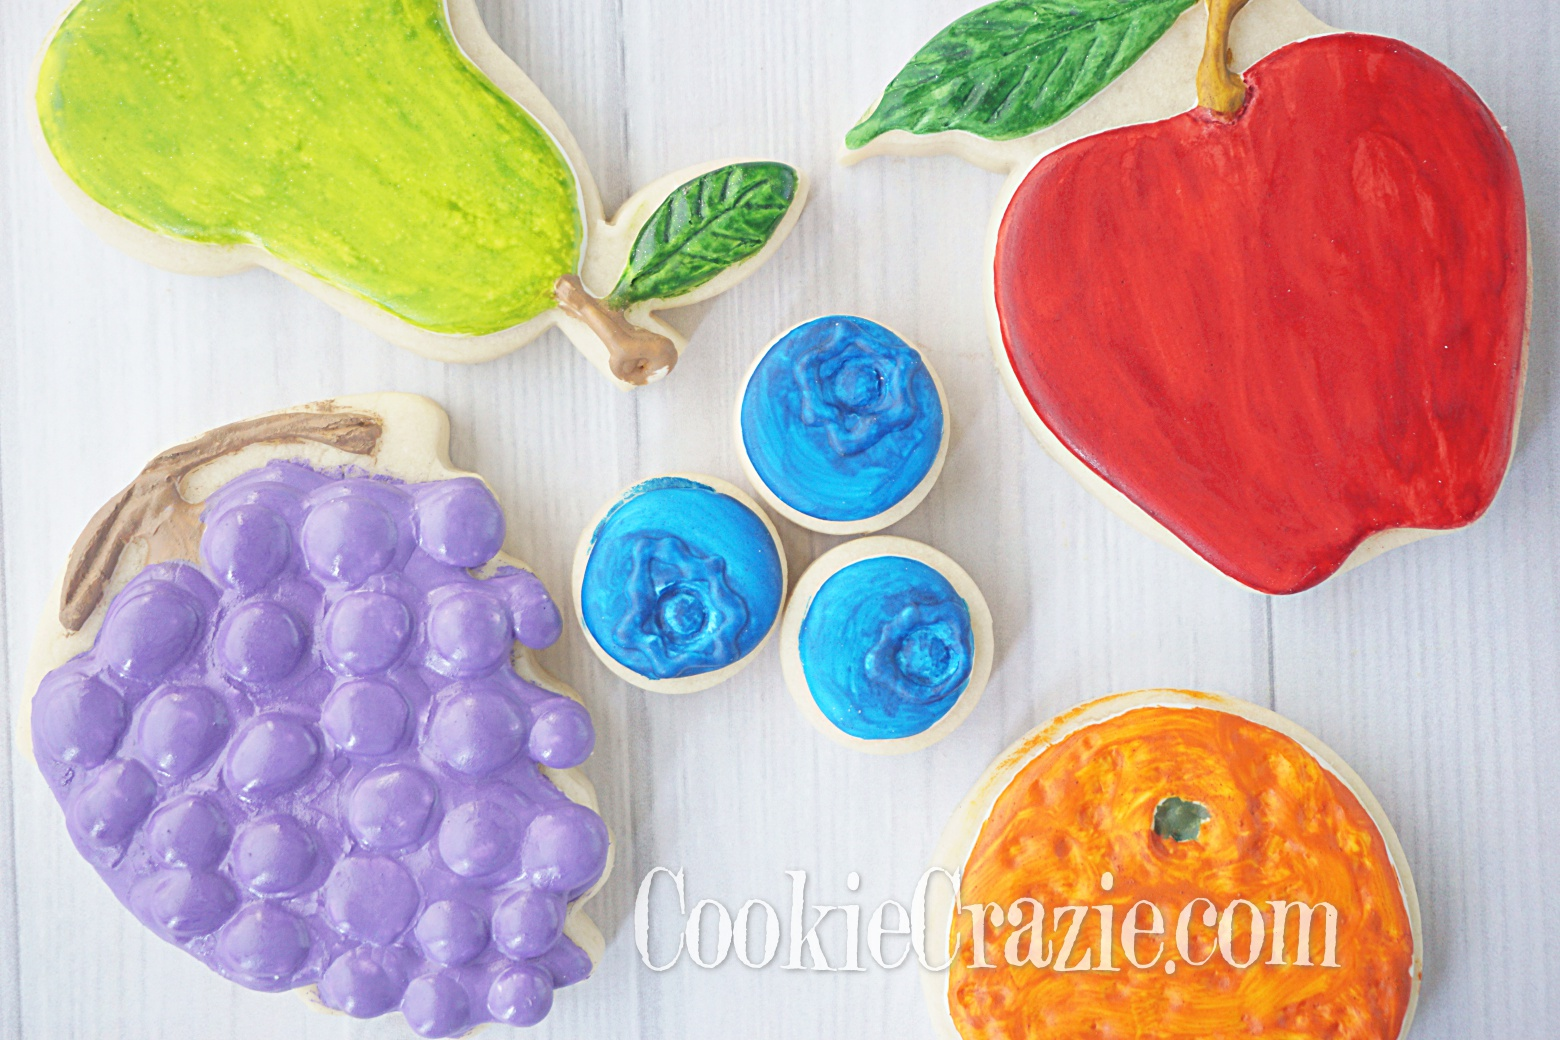 Blueberry Decorated Sugar Cookie YouTube video  HERE